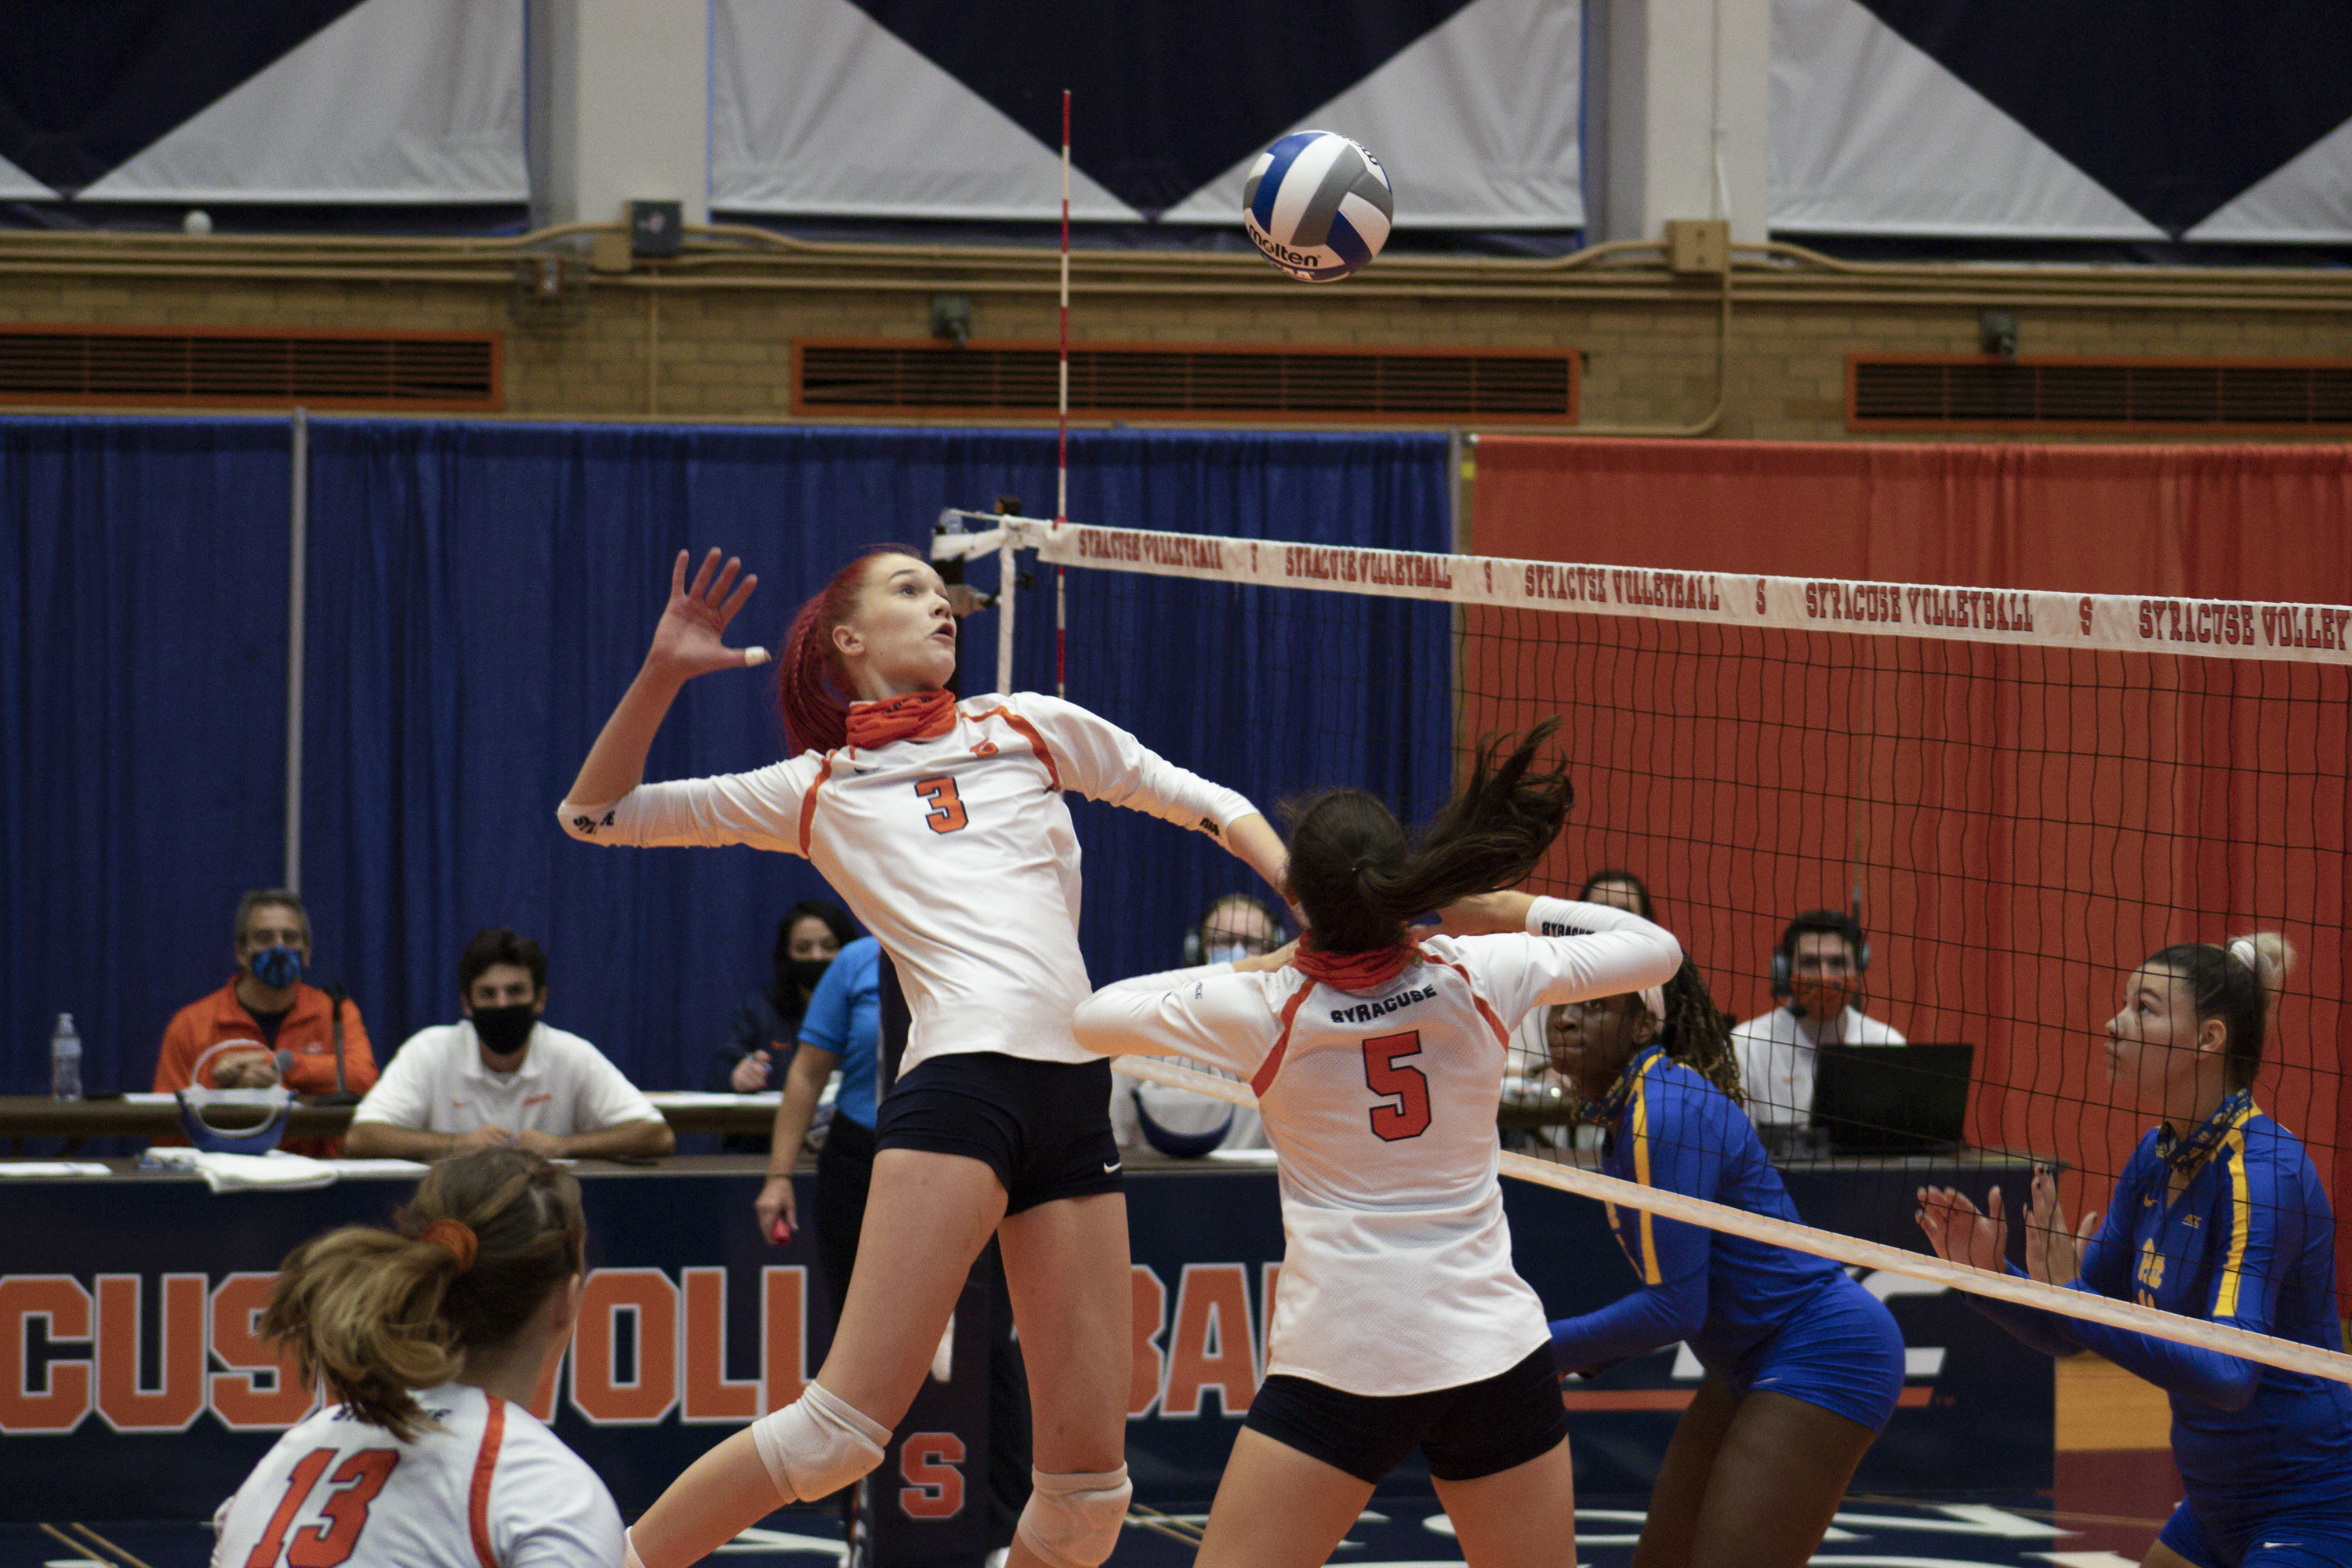 Syracuse Outside hitter Marina Markova jumps to spike the ball during the Sept. 25, 2020, home game against Pittsburgh.